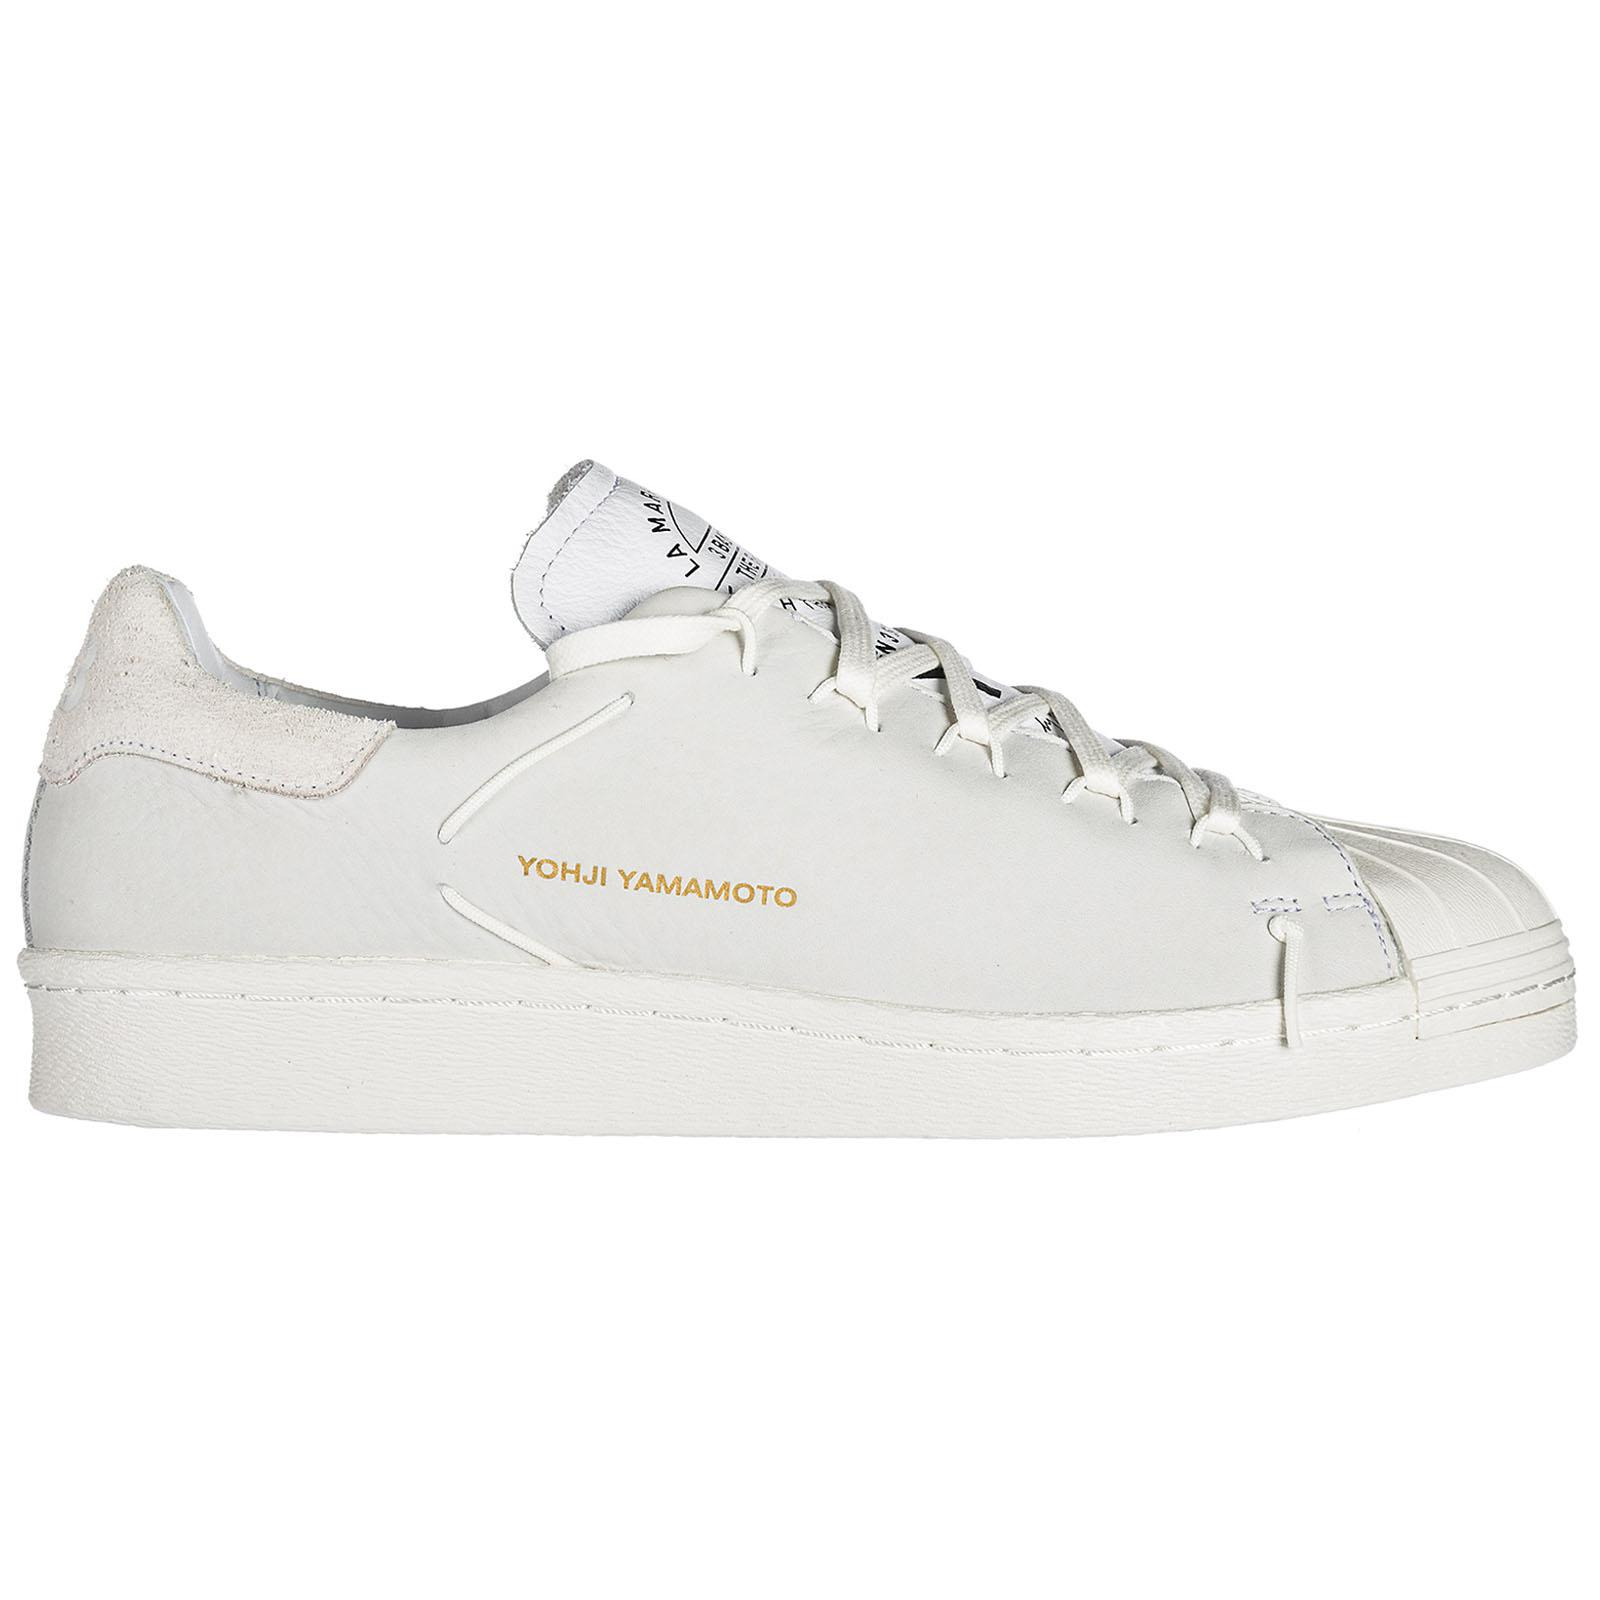 lowest price 0cea5 6f59c Y-3 Shoes Trainers Sneakers Super Knot in White for Men - Lyst